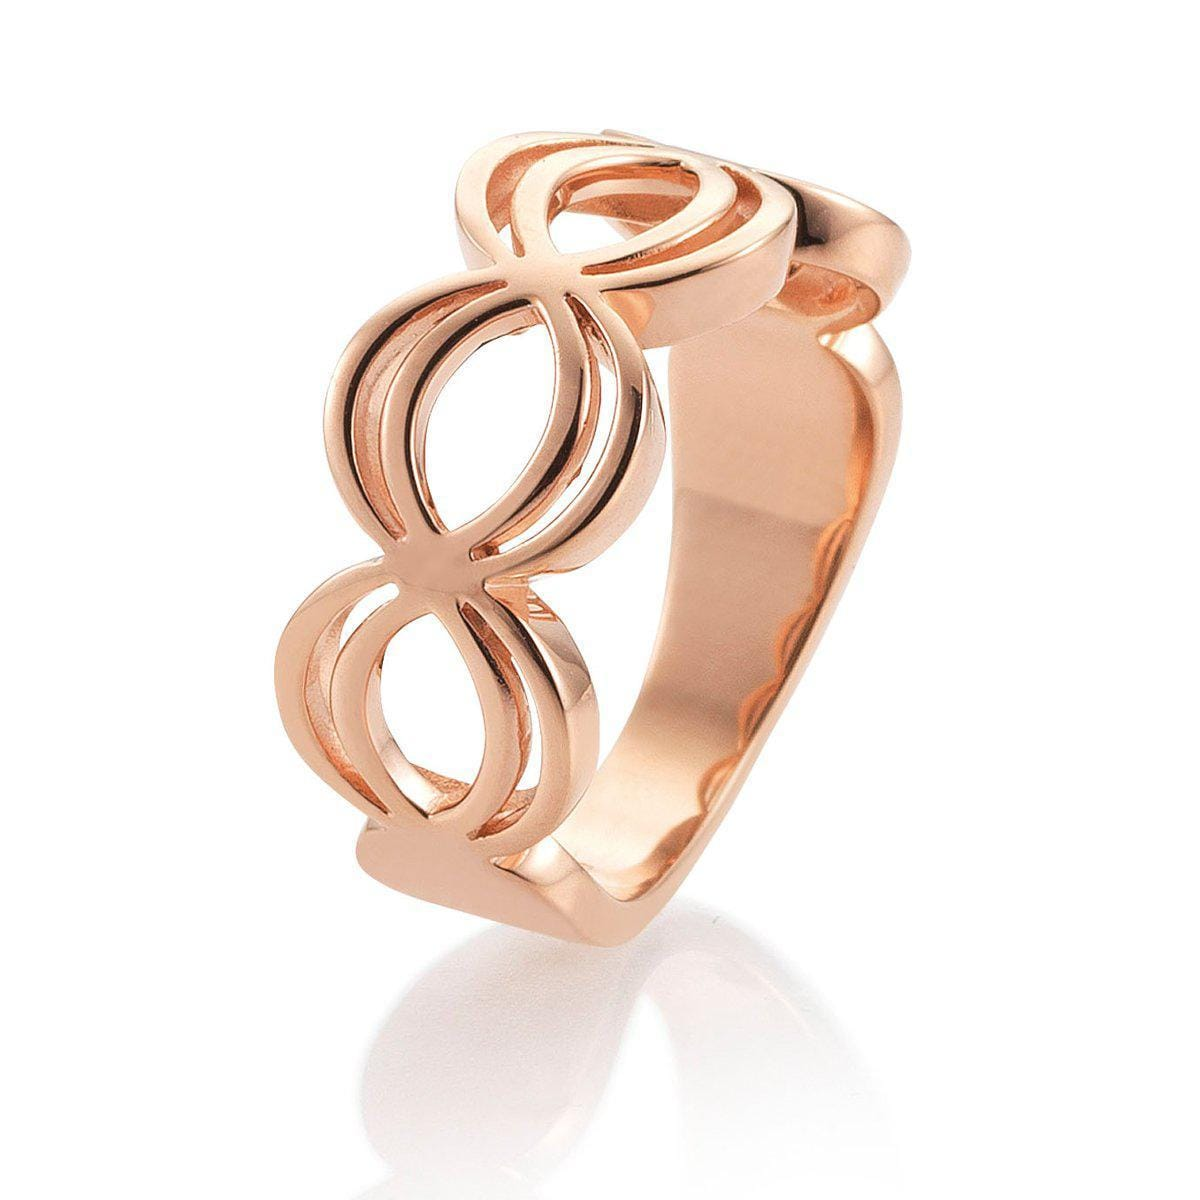 Rose Gold Plated Sterling Silver Ring - 44/01510-Breuning-Renee Taylor Gallery